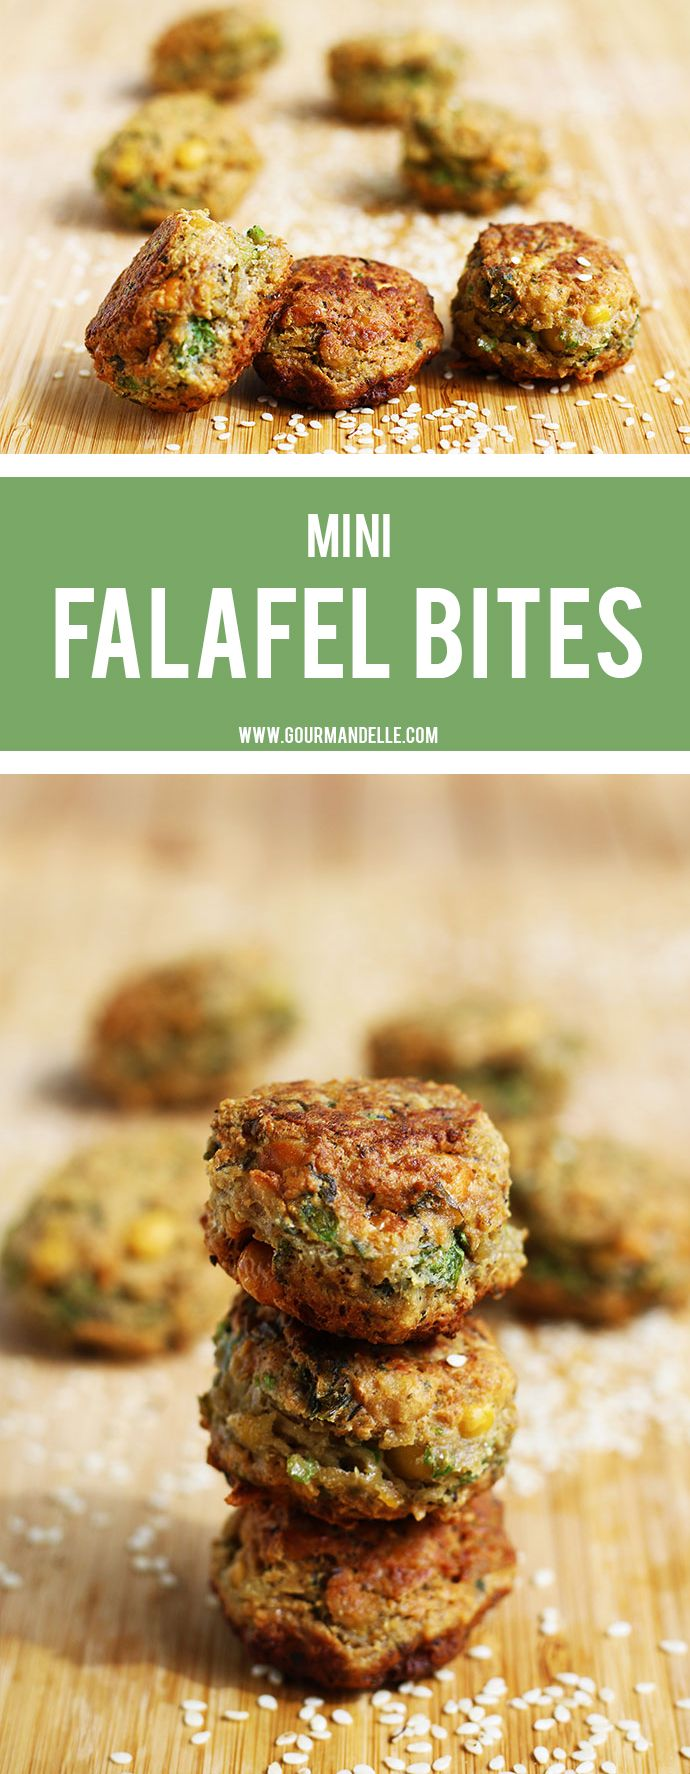 These mini falafel bites can be used as snacks, party appetizers or accompany a delicious mashed potato with salad meal. Check out the recipe below!  http://gourmandelle.com/mini-falafel-bites/